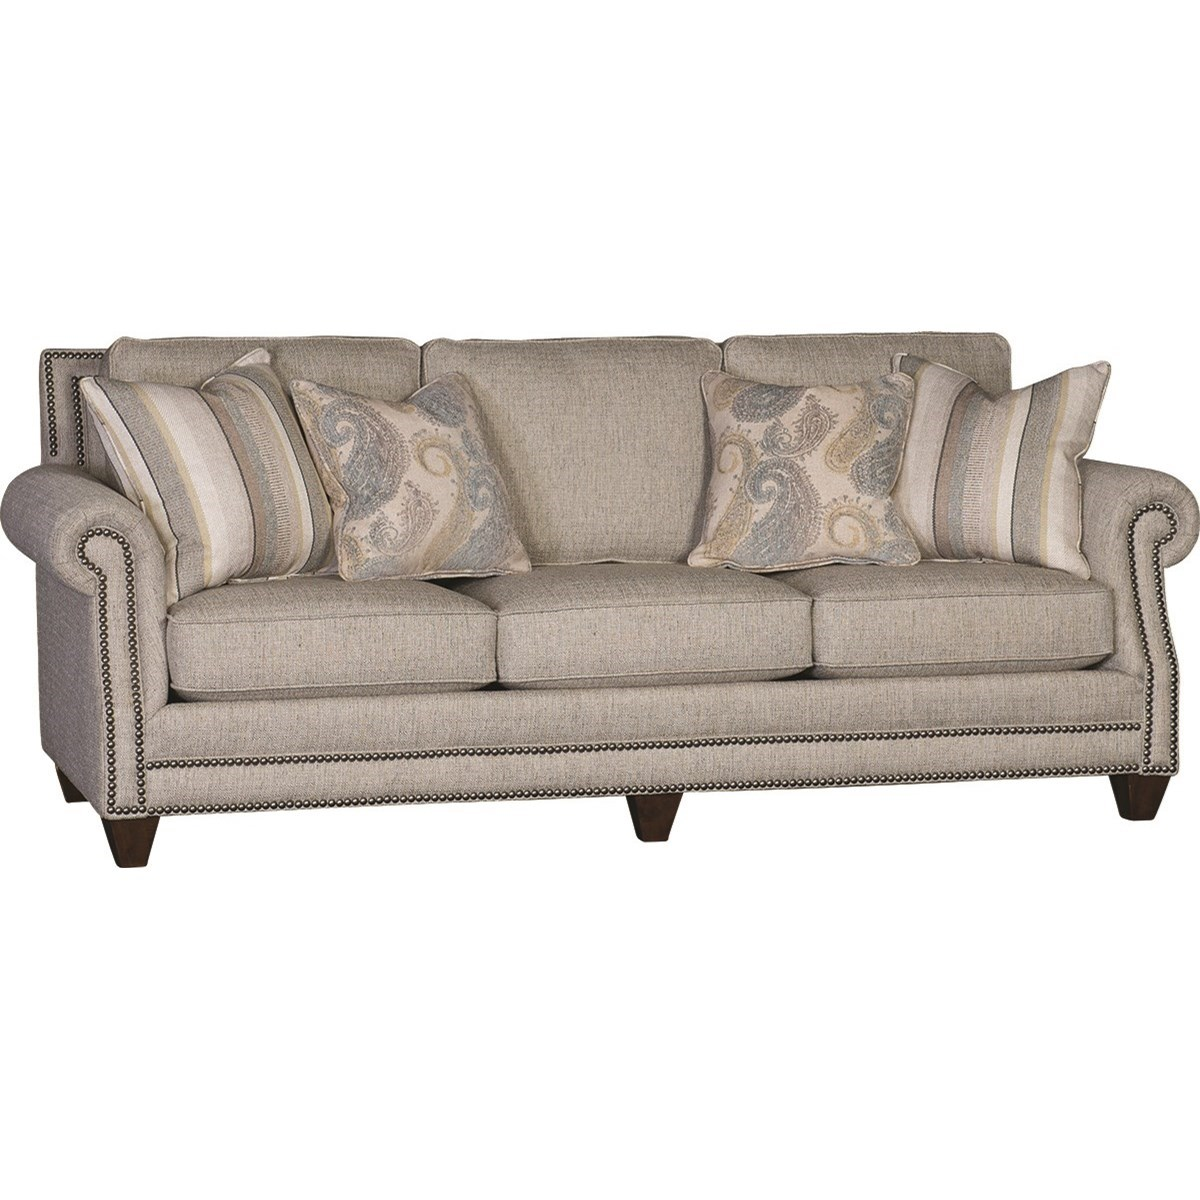 9000 Traditional Sofa by Mayo at Wilcox Furniture